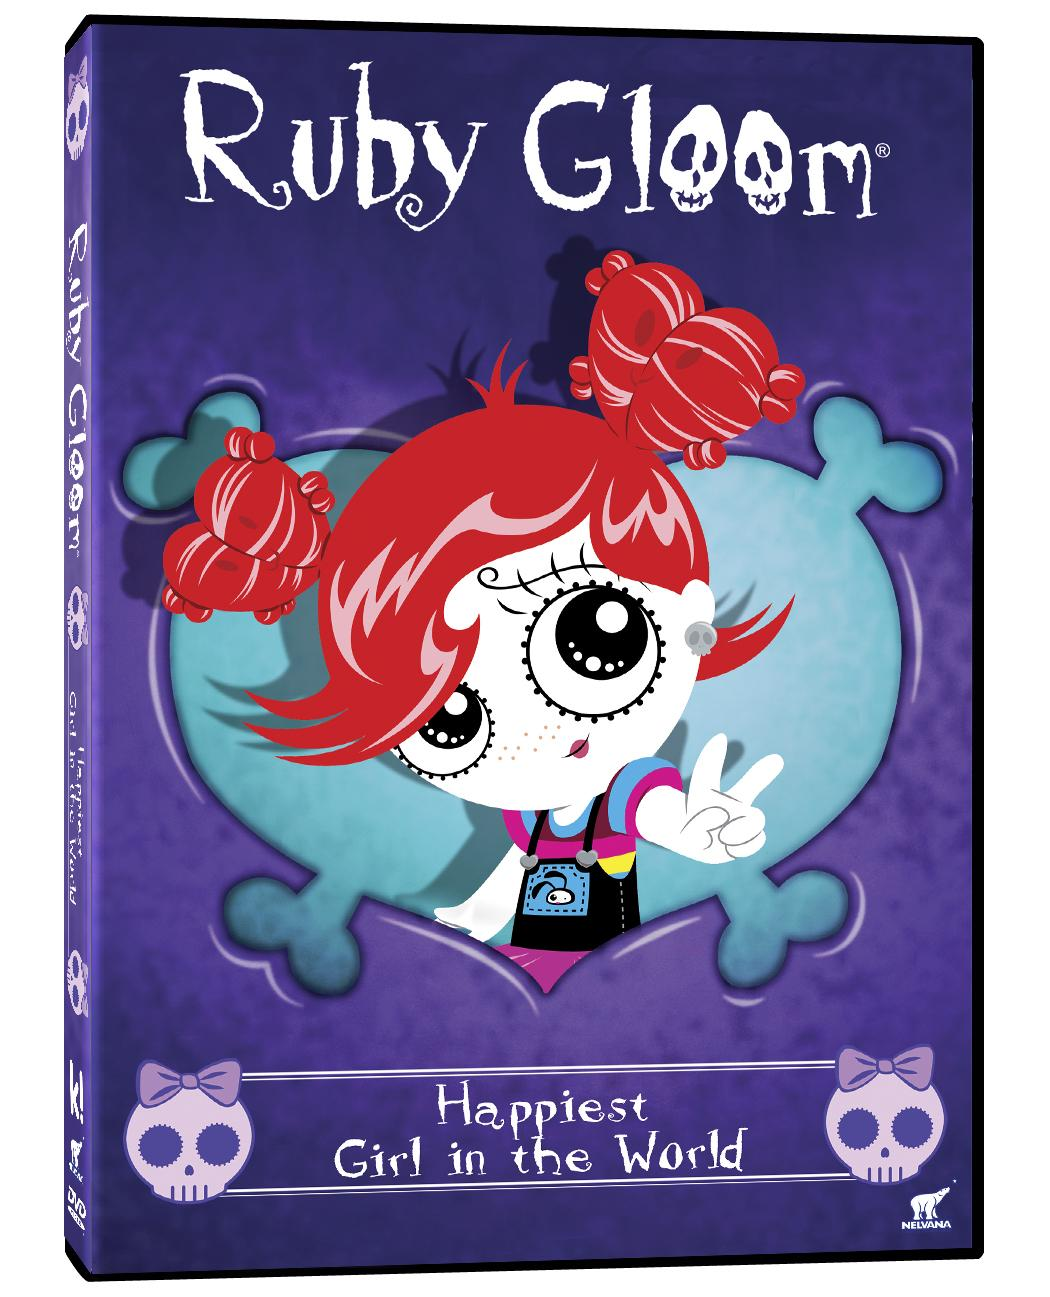 625828621659_USA_RubyGloom_HappiestGirlInTheWorld_3D